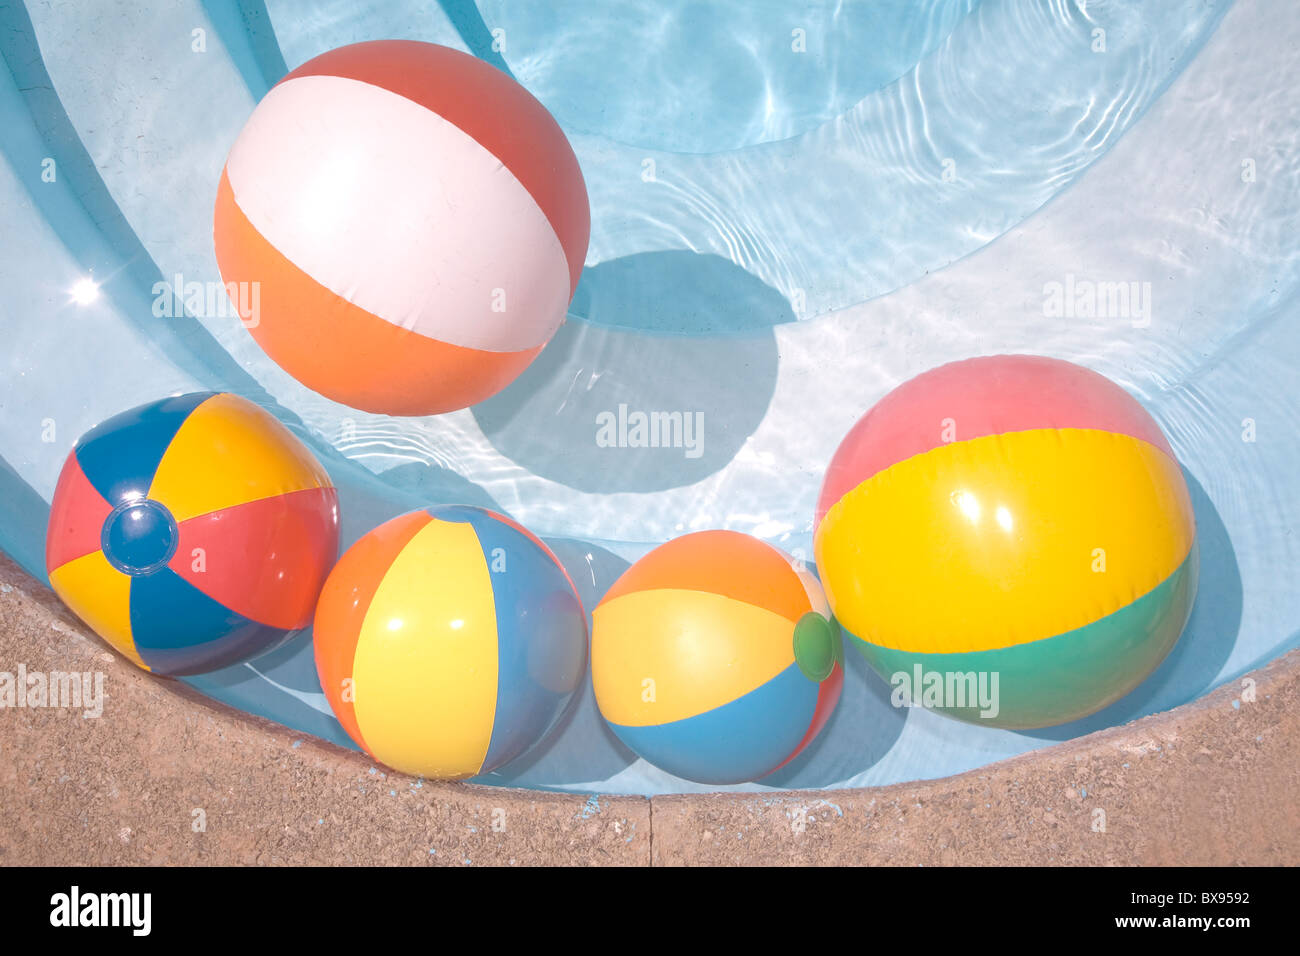 Beach balls in a blue swimming pool - Stock Image